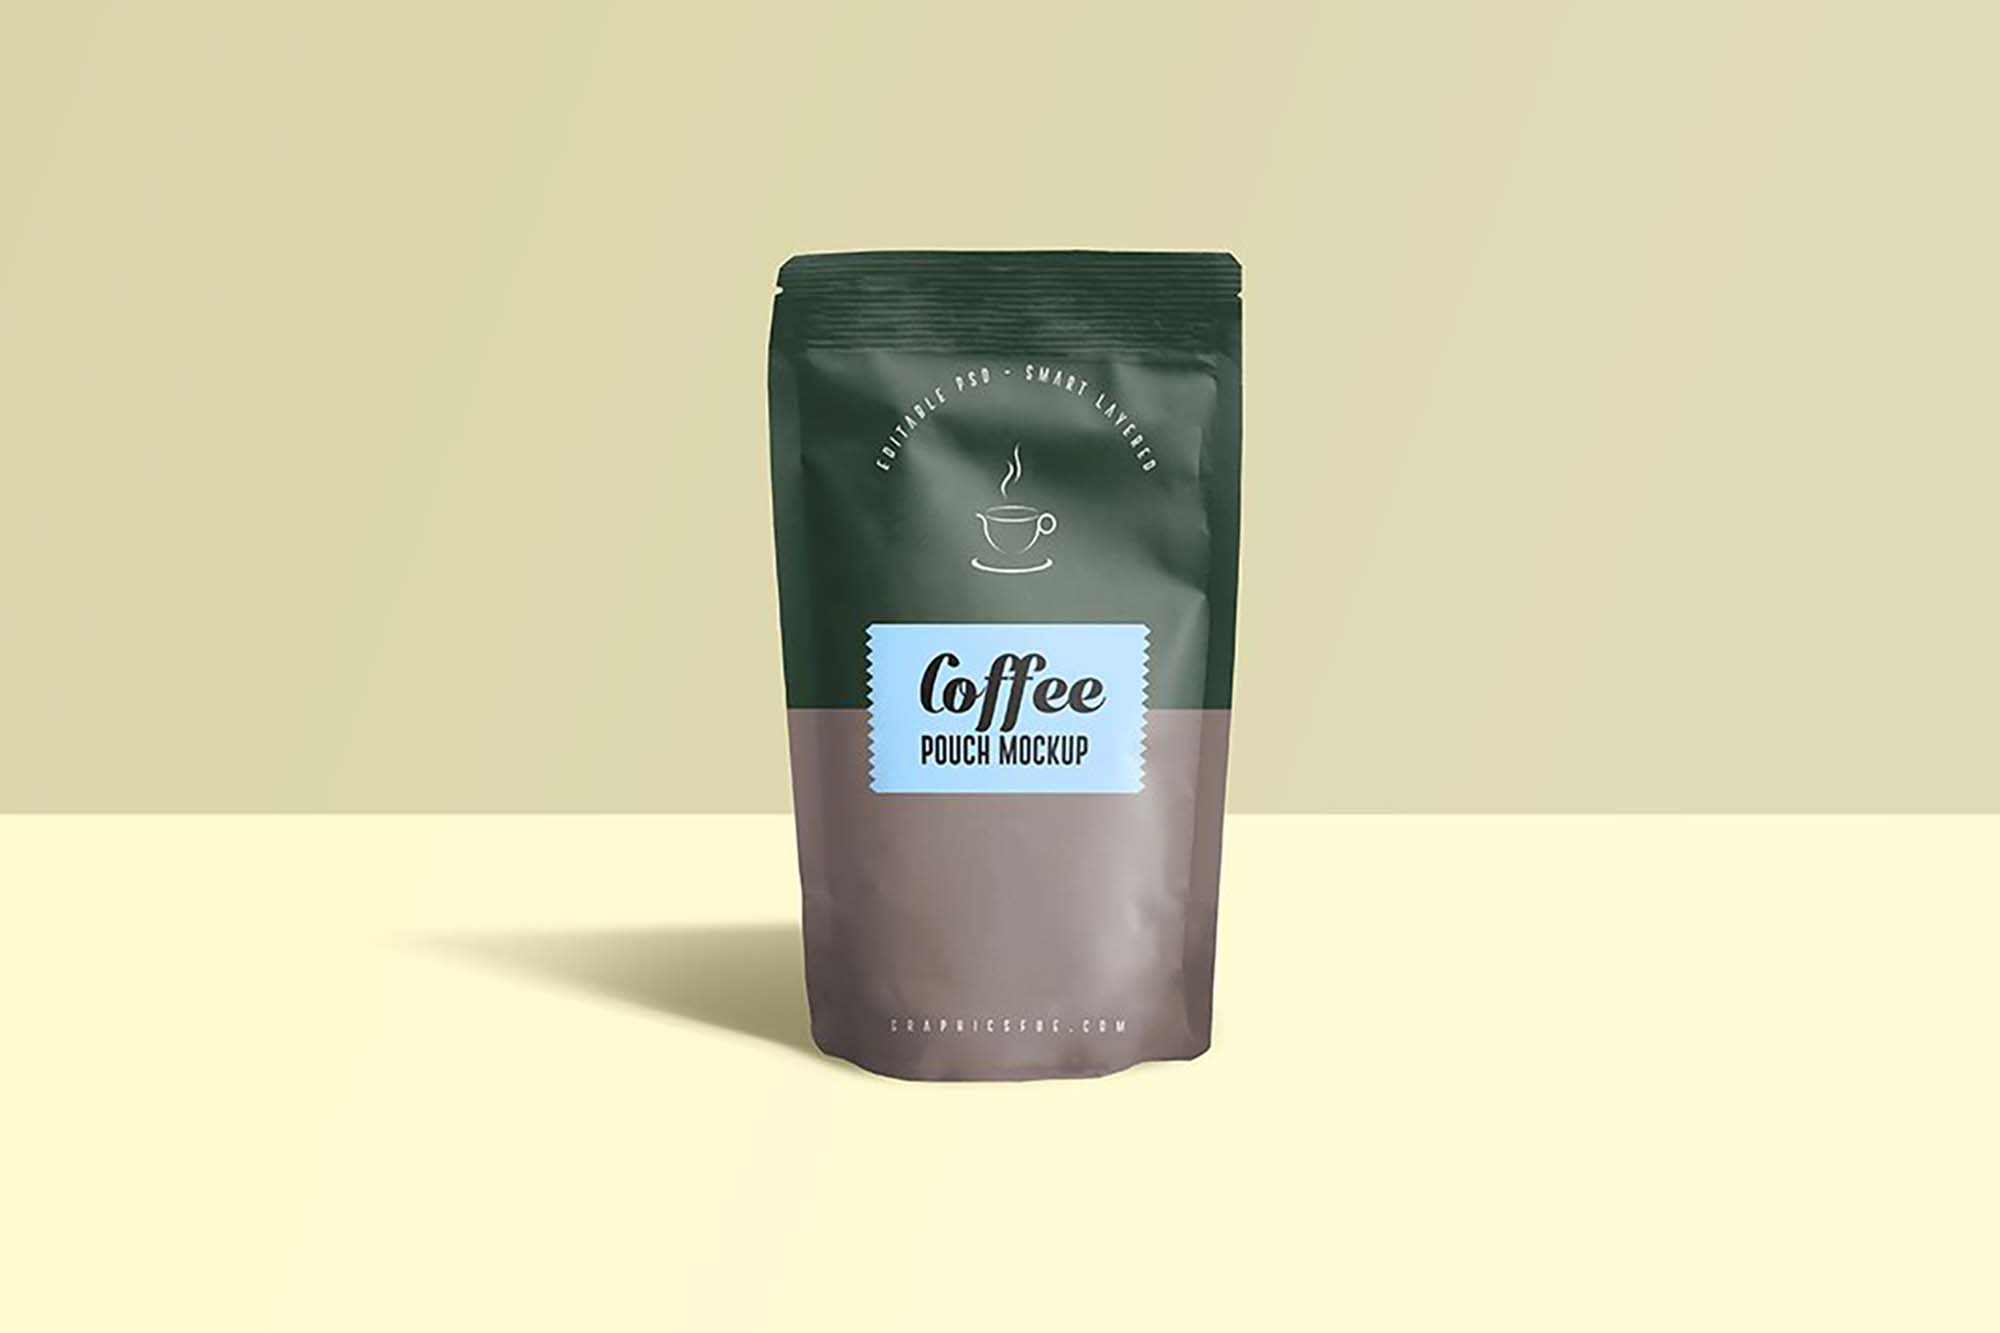 Coffee Pouch Mockup 2